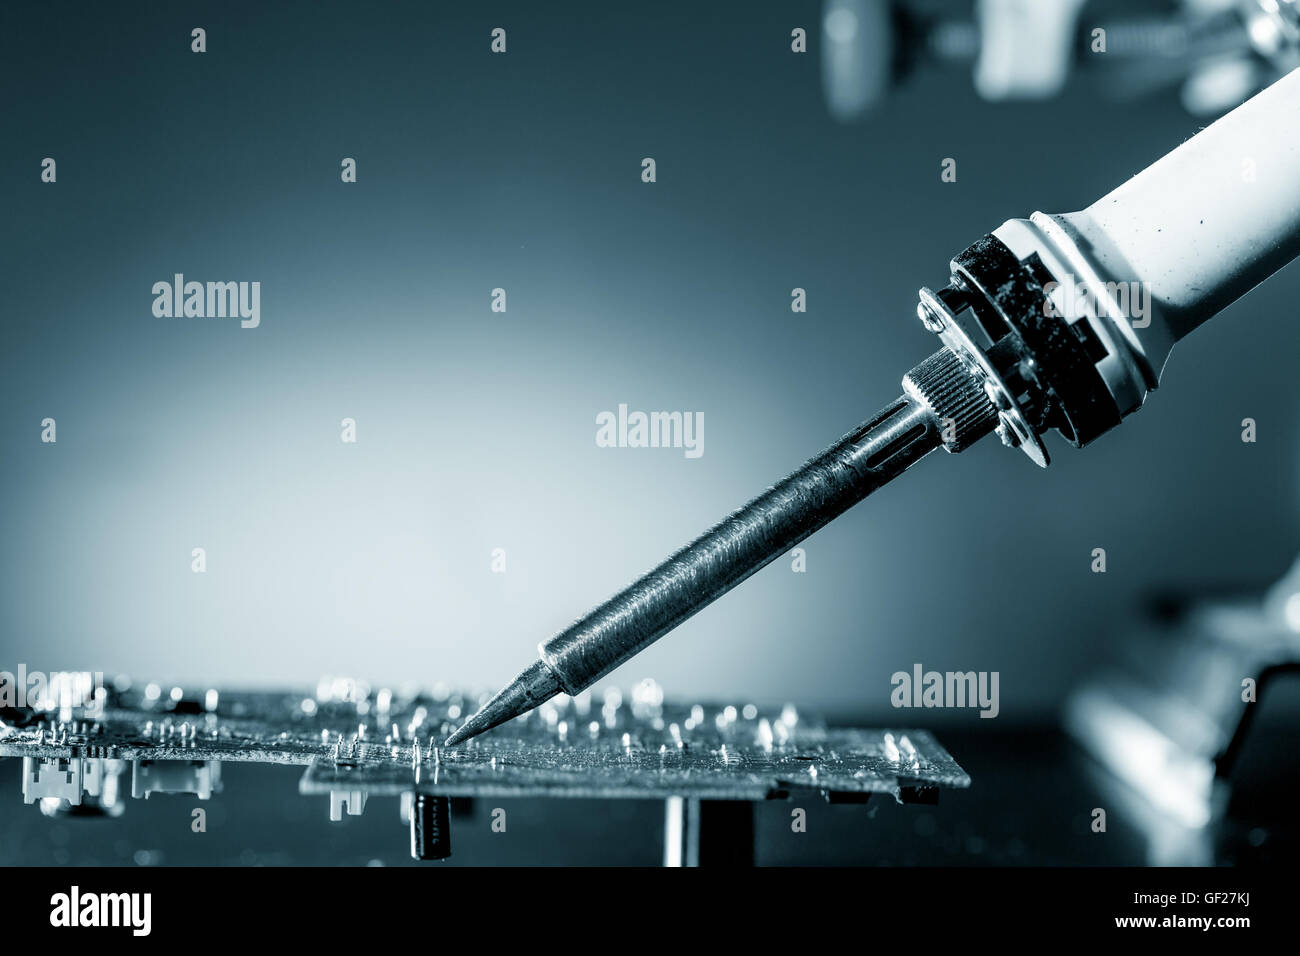 Use a soldering iron at fix - Stock Image